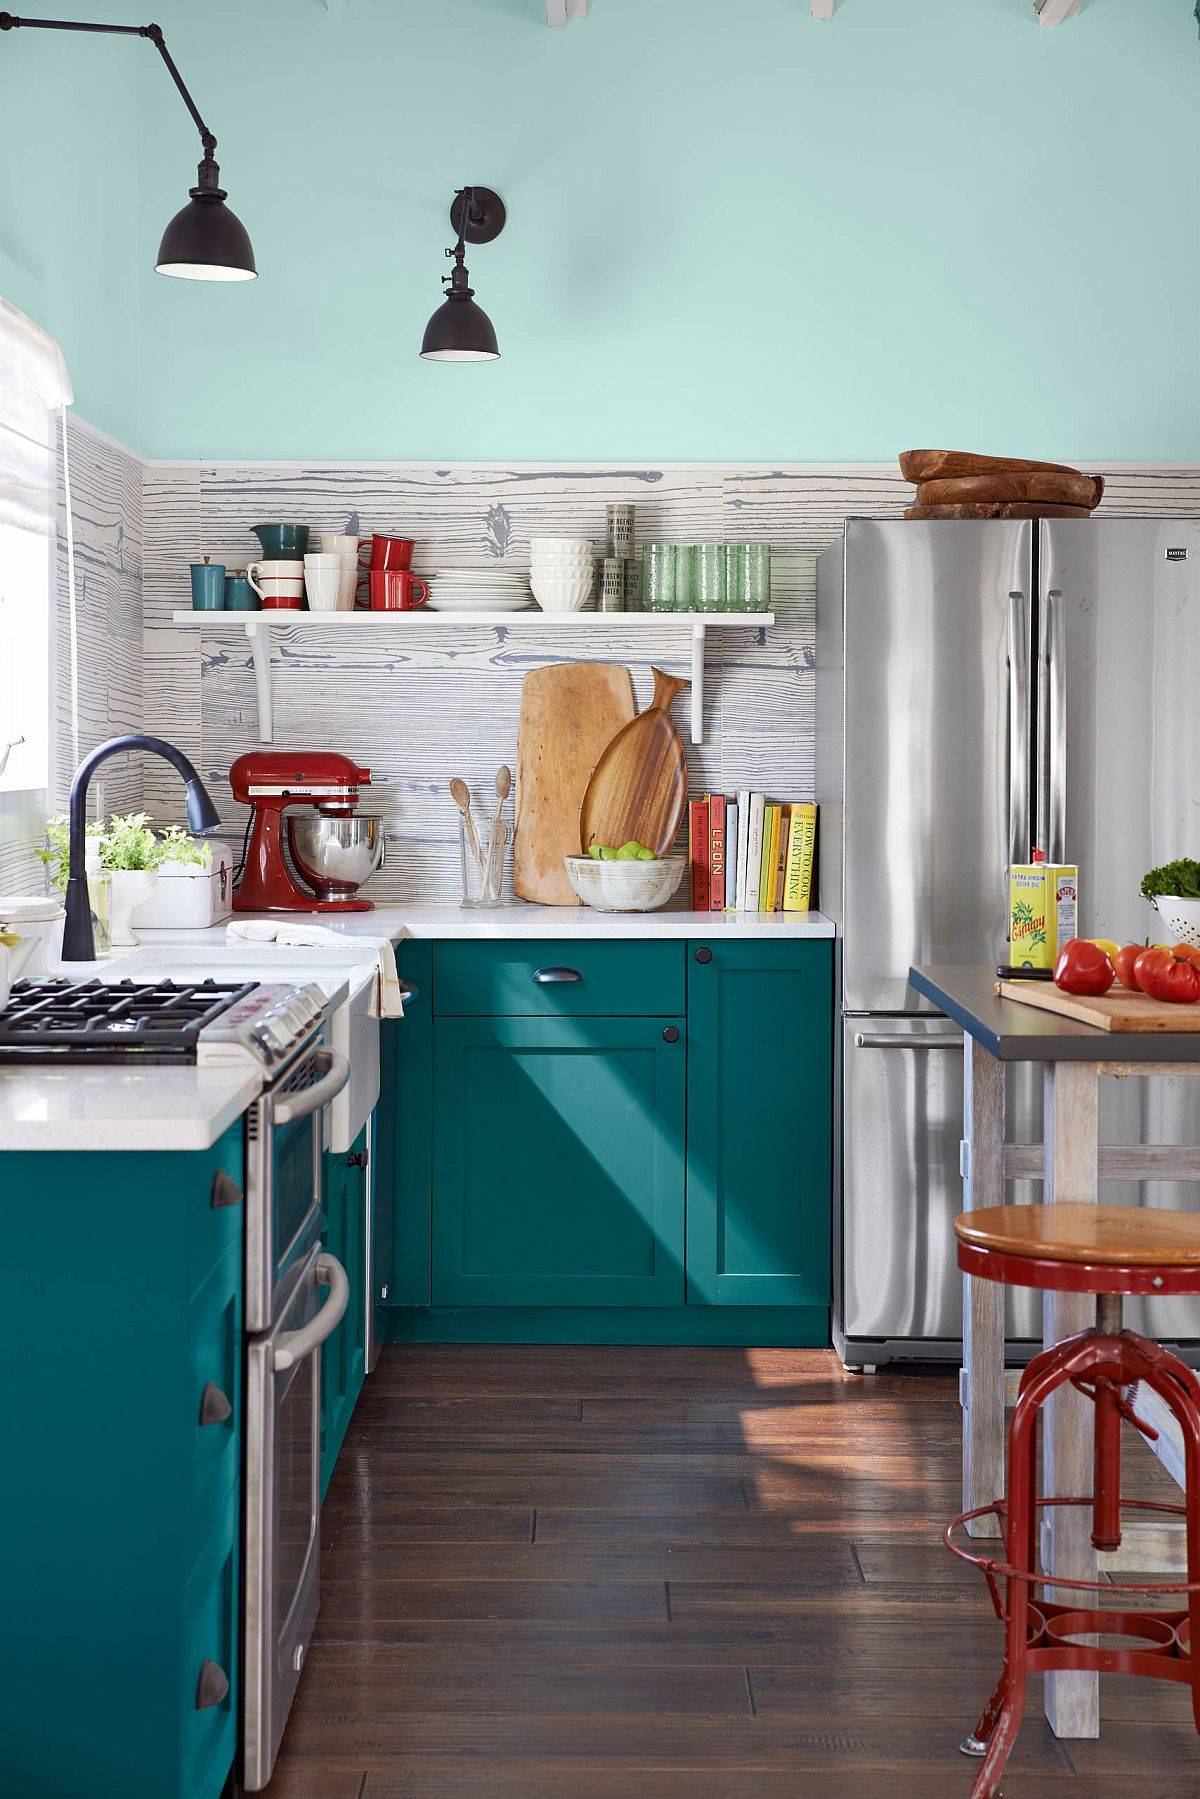 Lovely-and-rendy-teal-cabinets-for-the-chic-beach-style-kitchen-28653